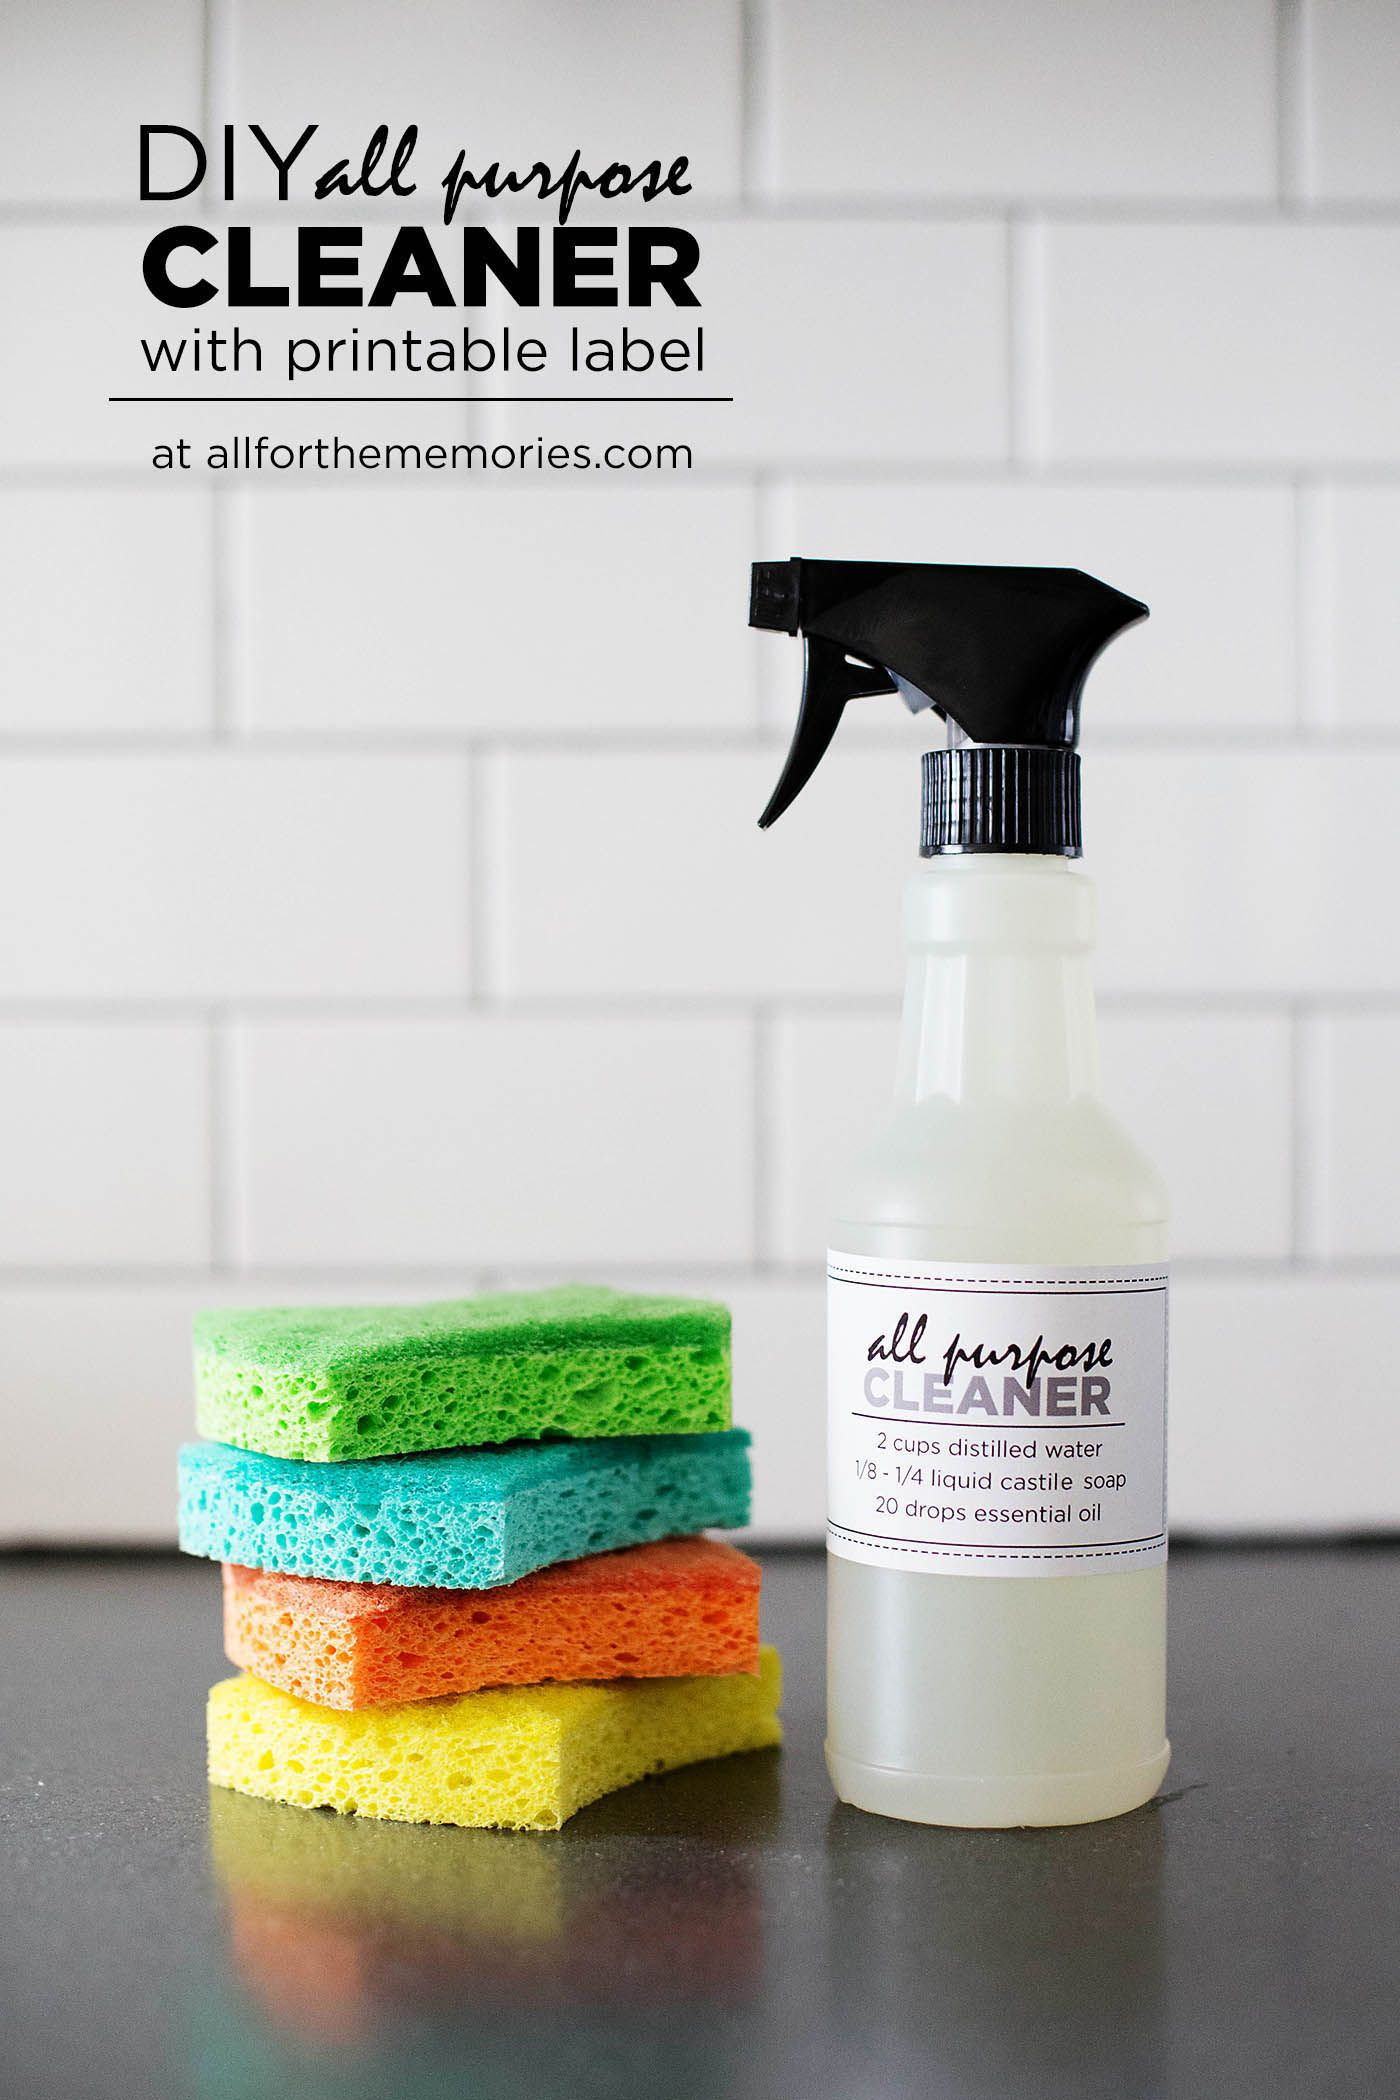 DIY all purpose cleaner | cleaning products | Diy all